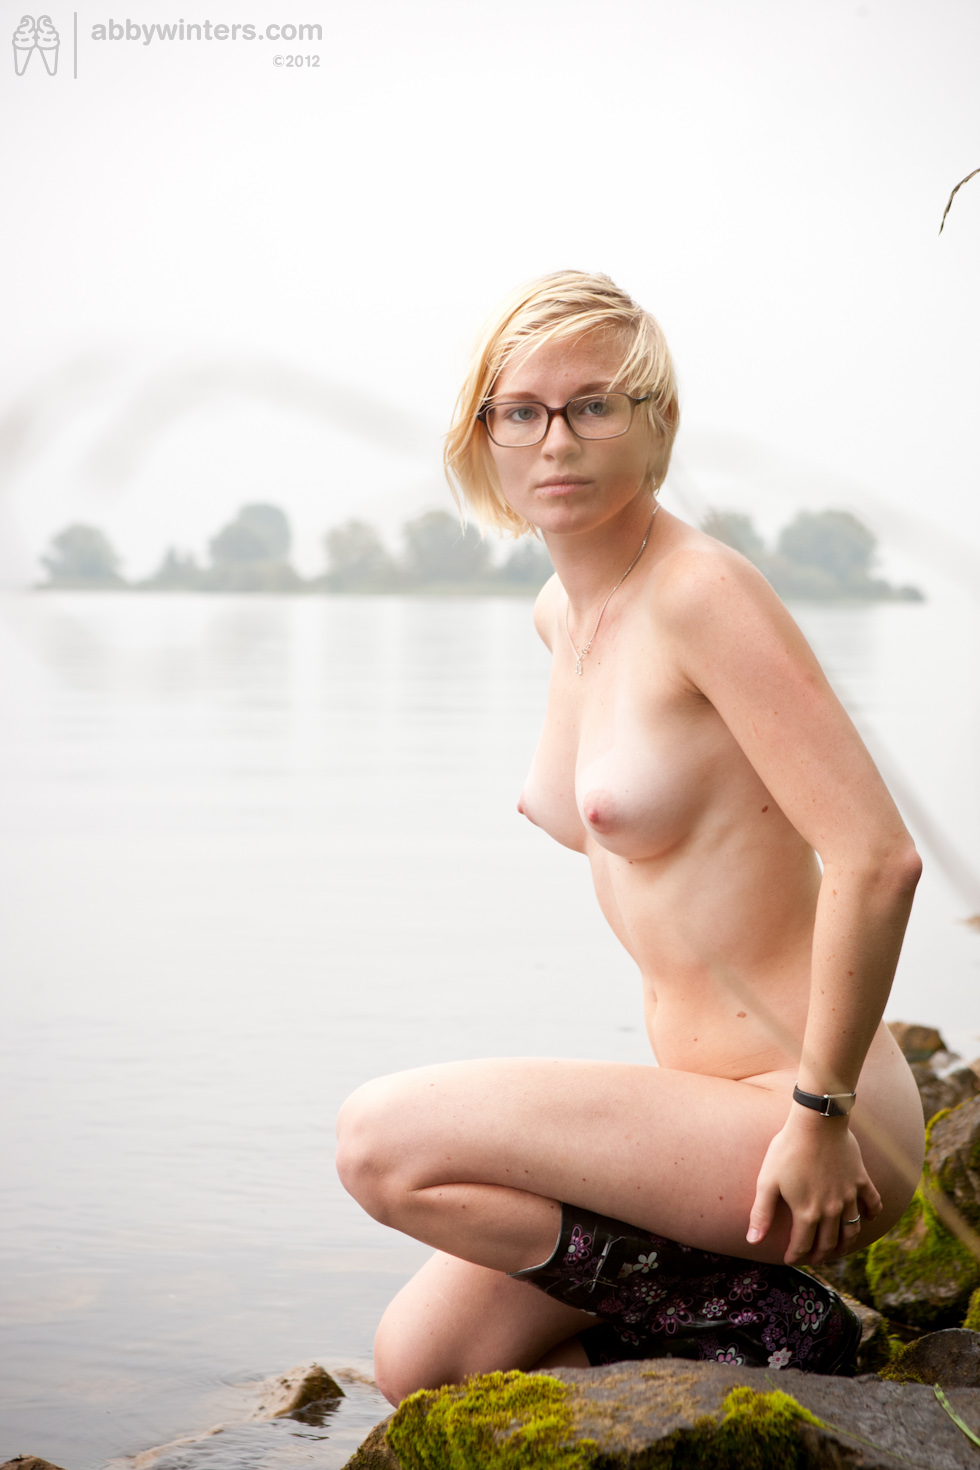 nude-girls-in-glasses-boobs-mix-vol2-67